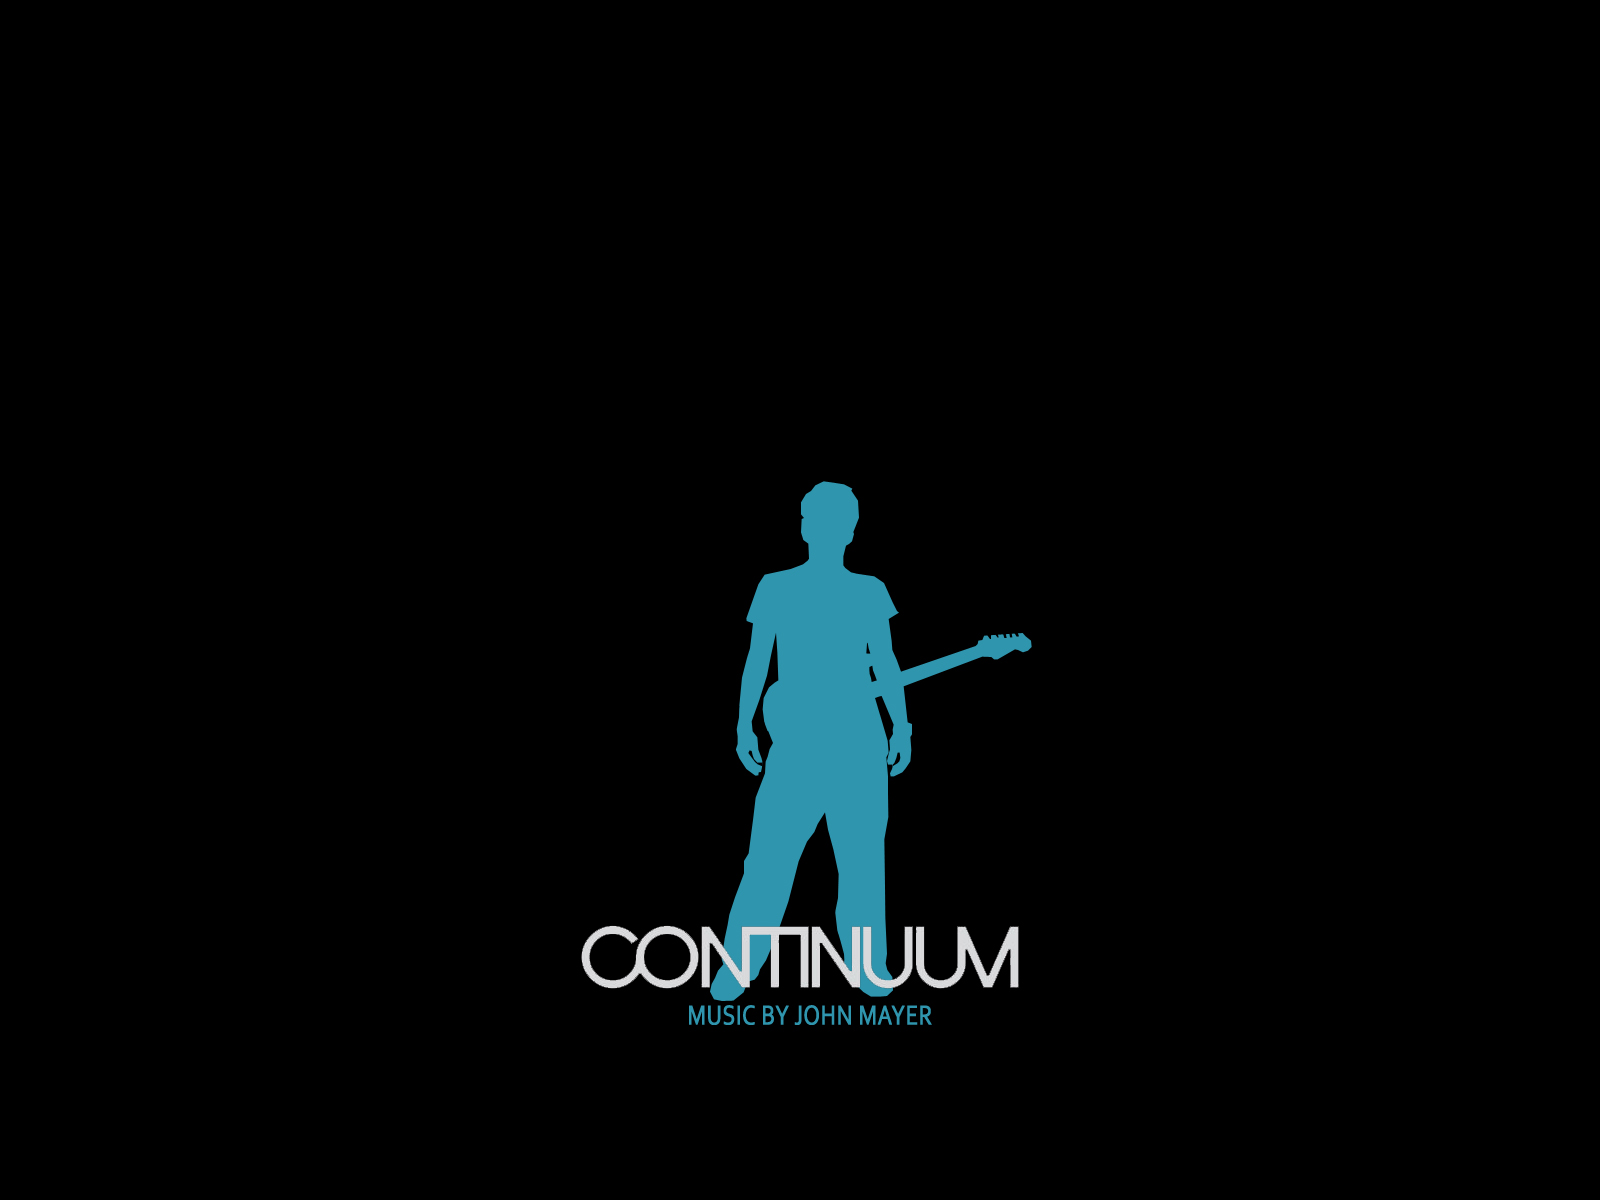 John Mayer Wallpaper: John Mayer Continuum Wallpaper By Spartacus41 On DeviantArt